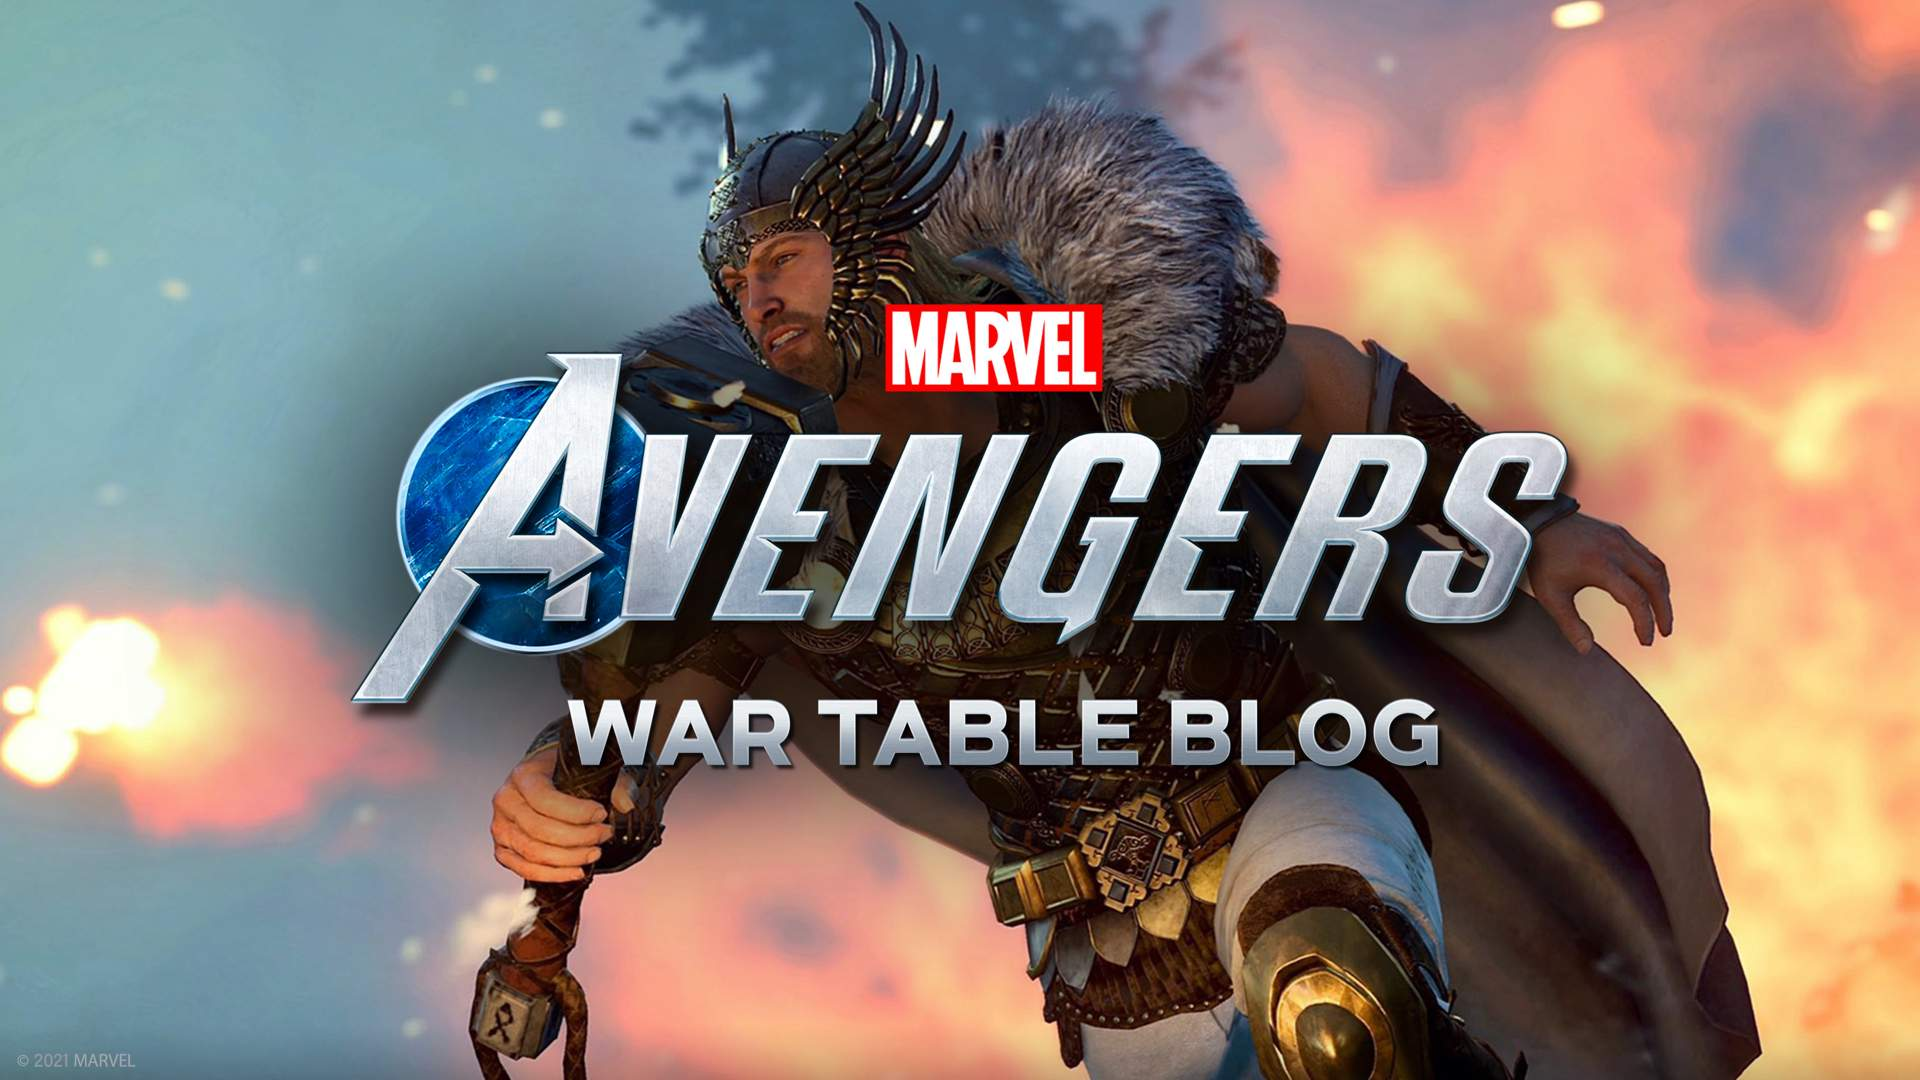 WAR TABLE Weekly Blog #33